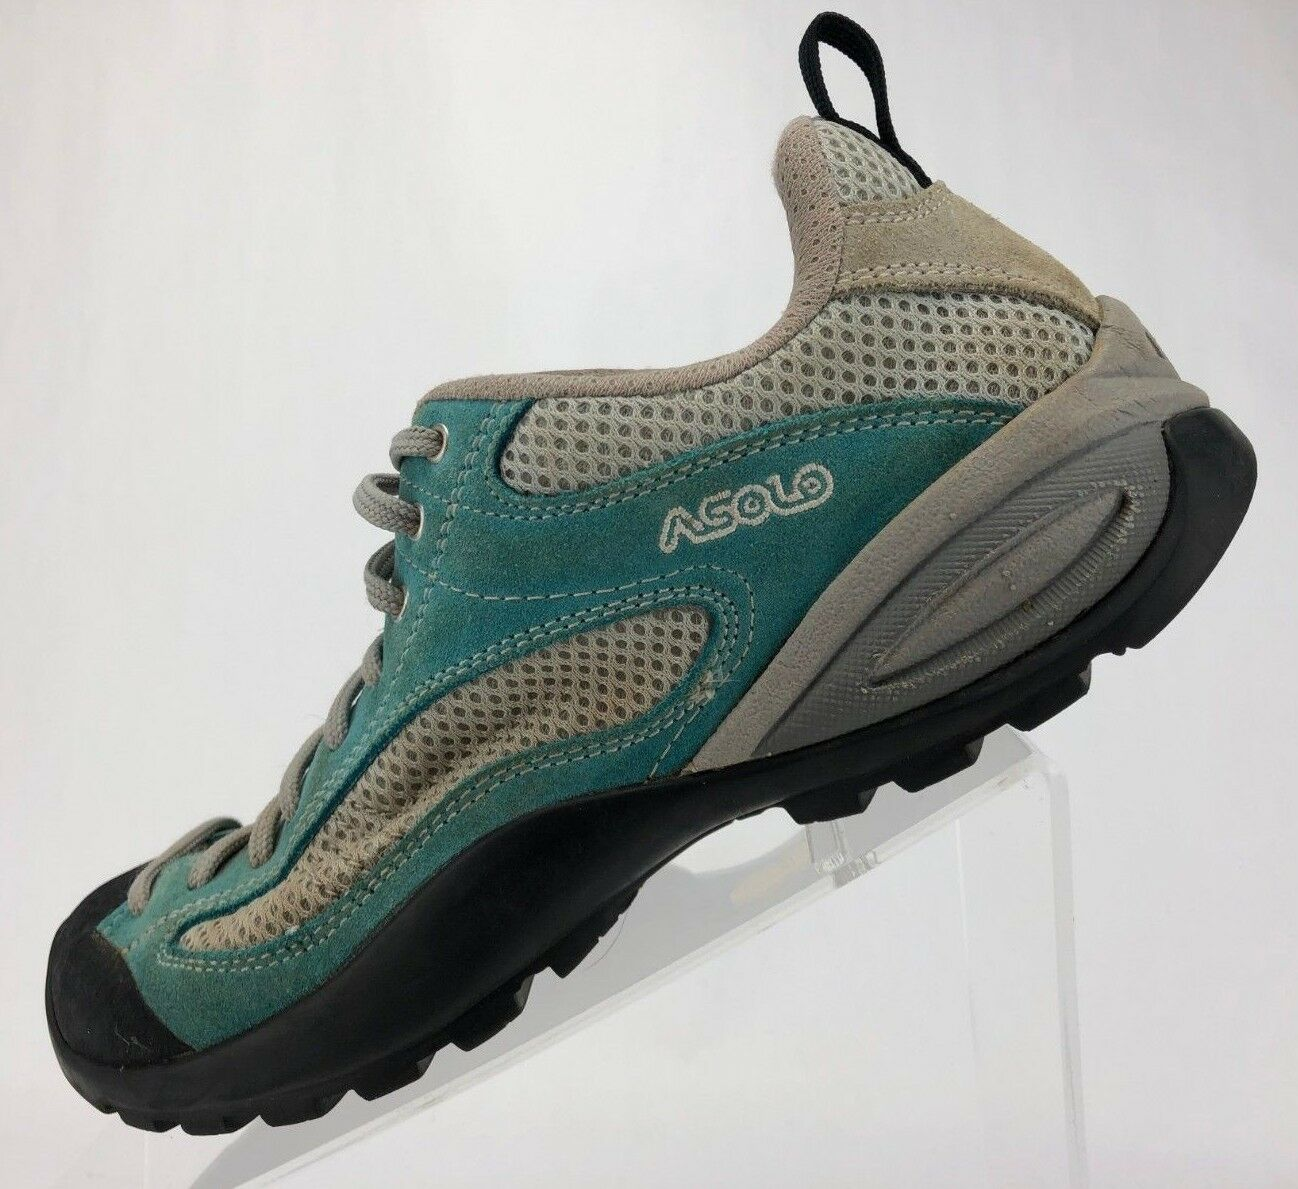 Asolo Hiking shoes Boots Mountaineering Green Leather Comfort Trail Womens Sz 8